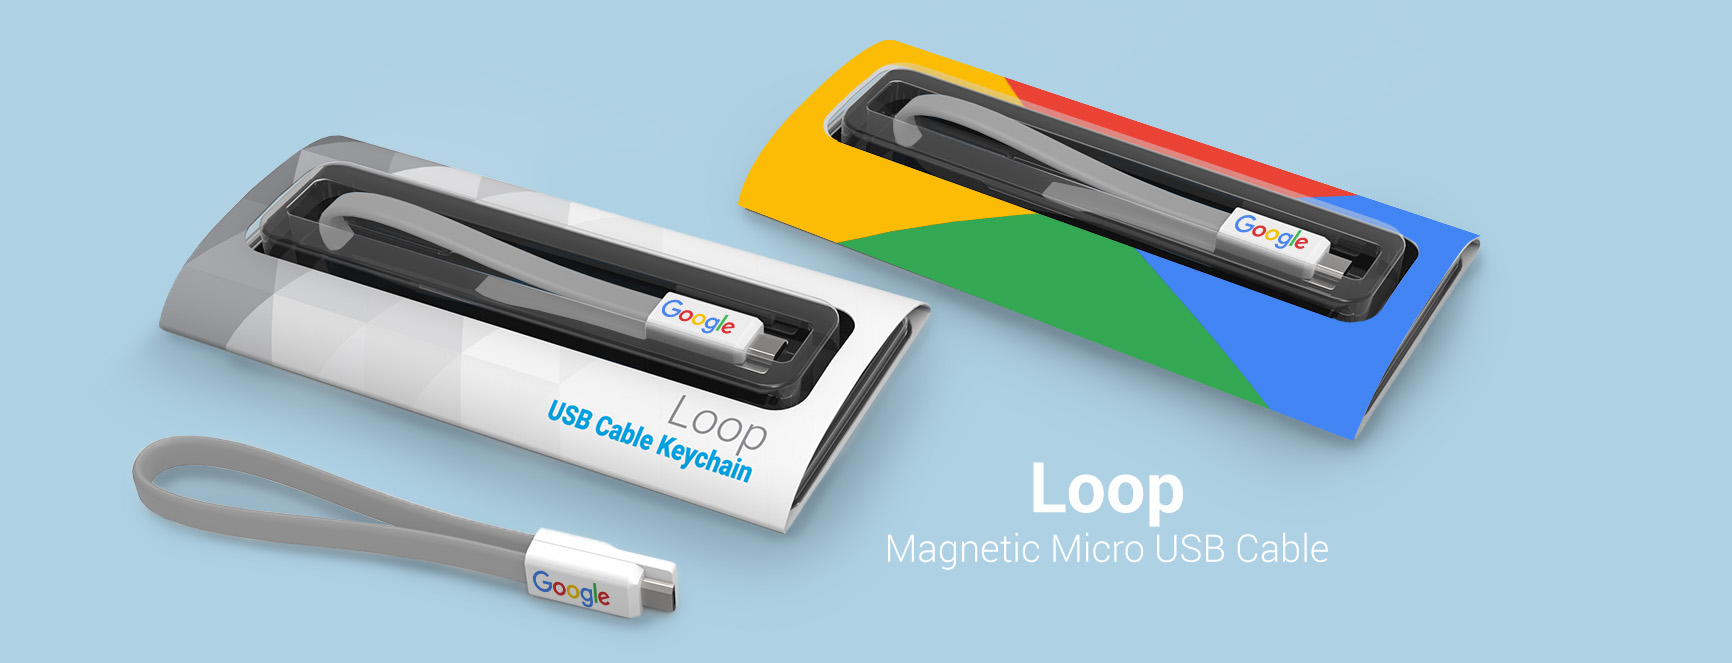 Loop packaging